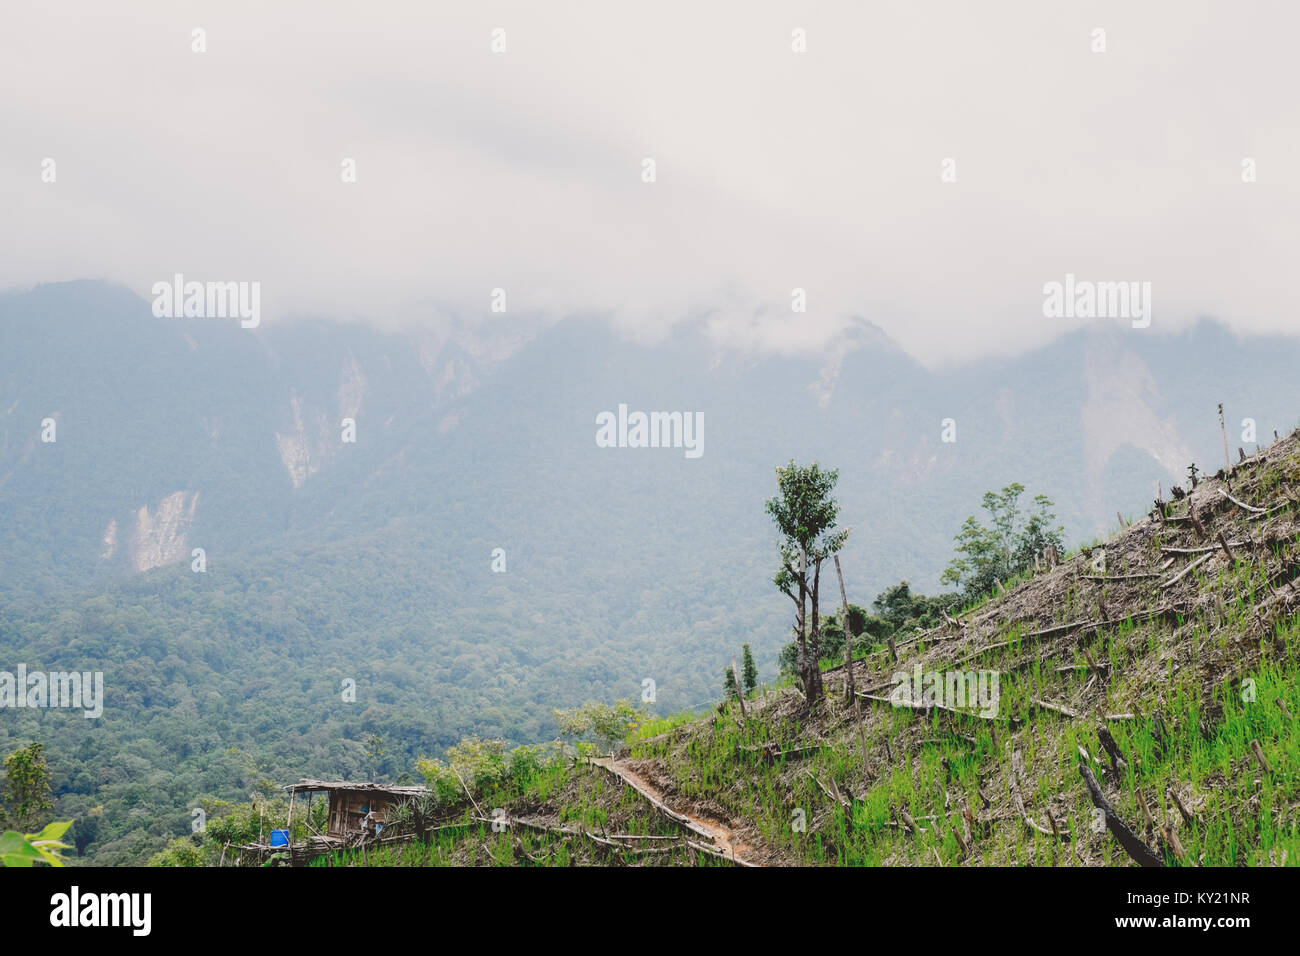 Land clearing for shifting cultivation. - Stock Image